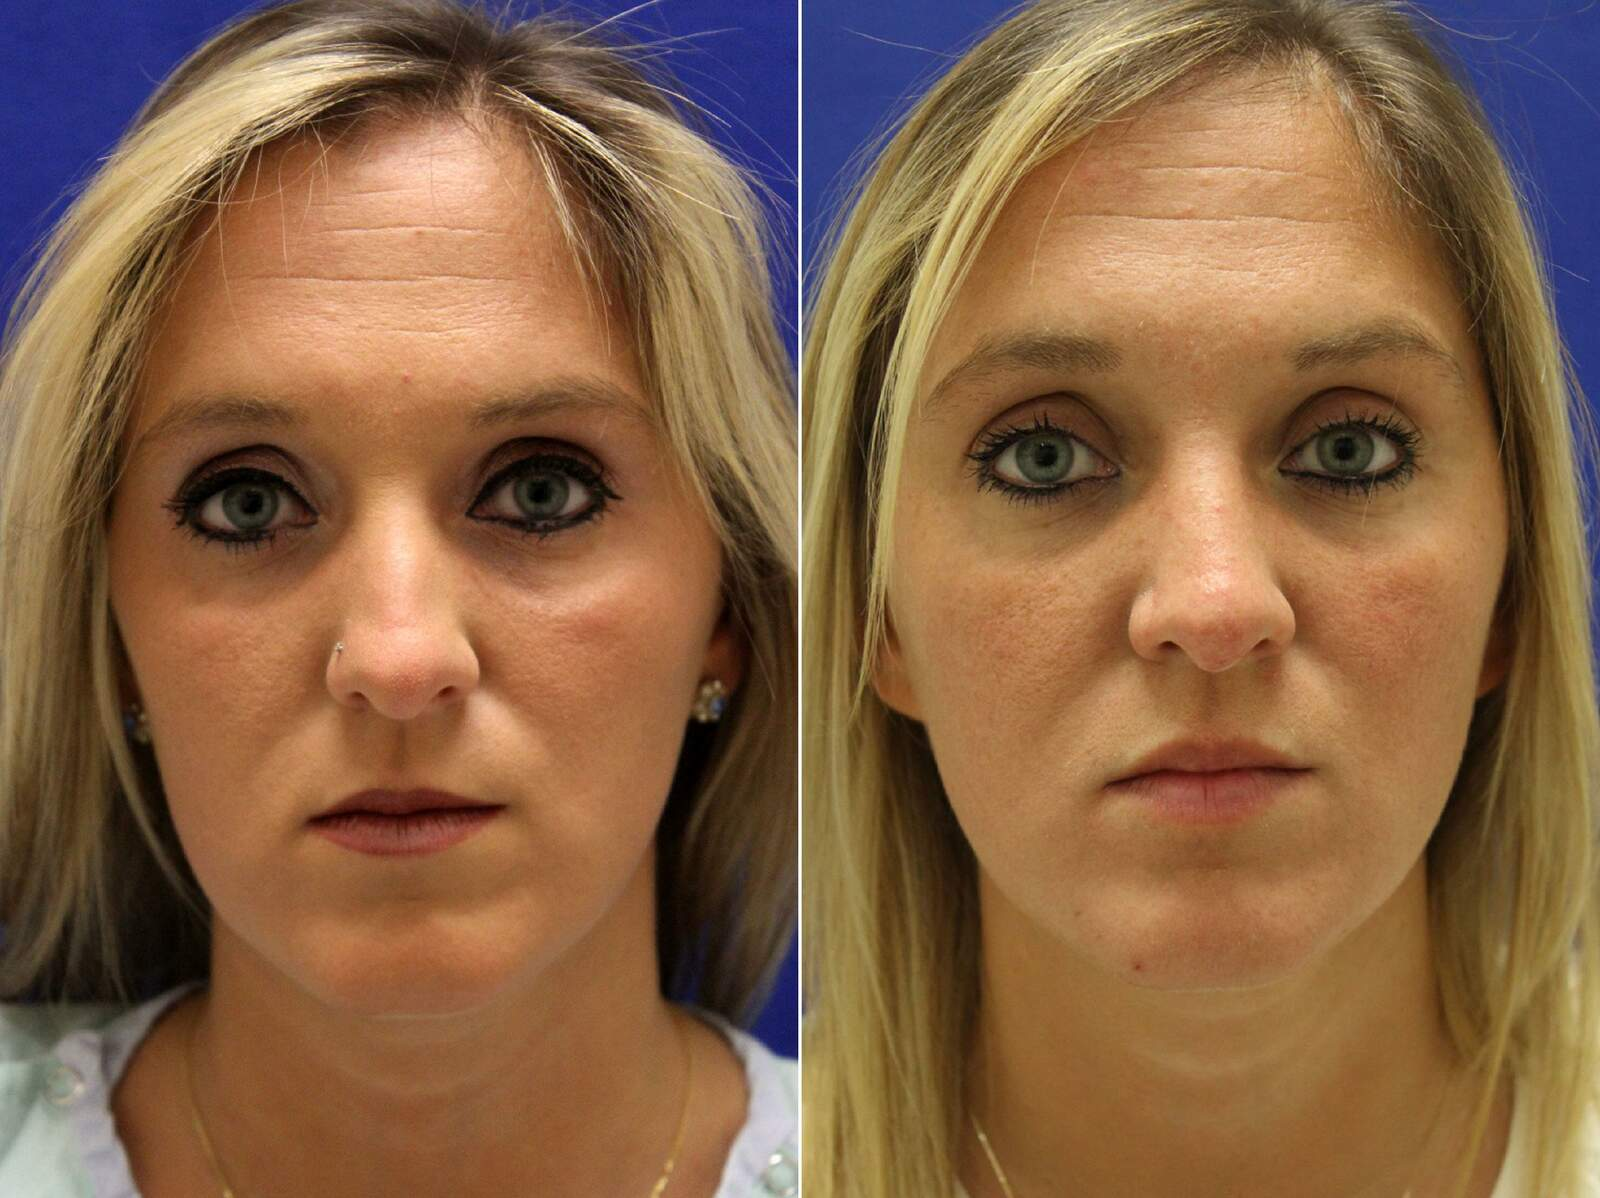 Before and After Photos in , , Rhinoplasty in Lexington, KY